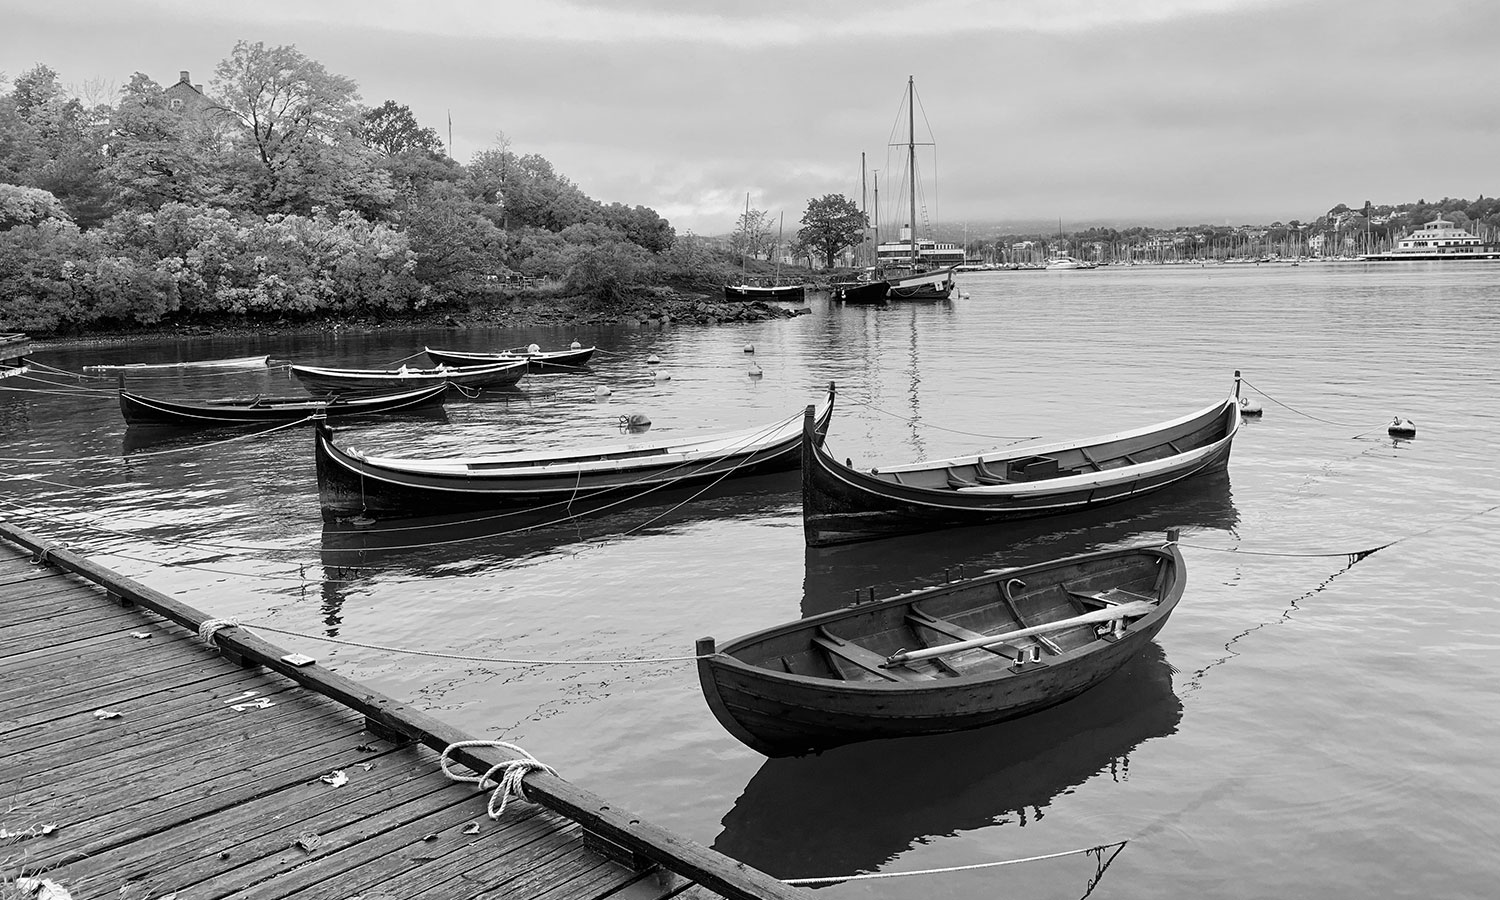 Black-&-White.-2nd-place.-8.Black&white_Oslo,-Norway_At-the-Fram-museum,-looking-into-the-harbor-where-the-student-built-dory's-are-built.